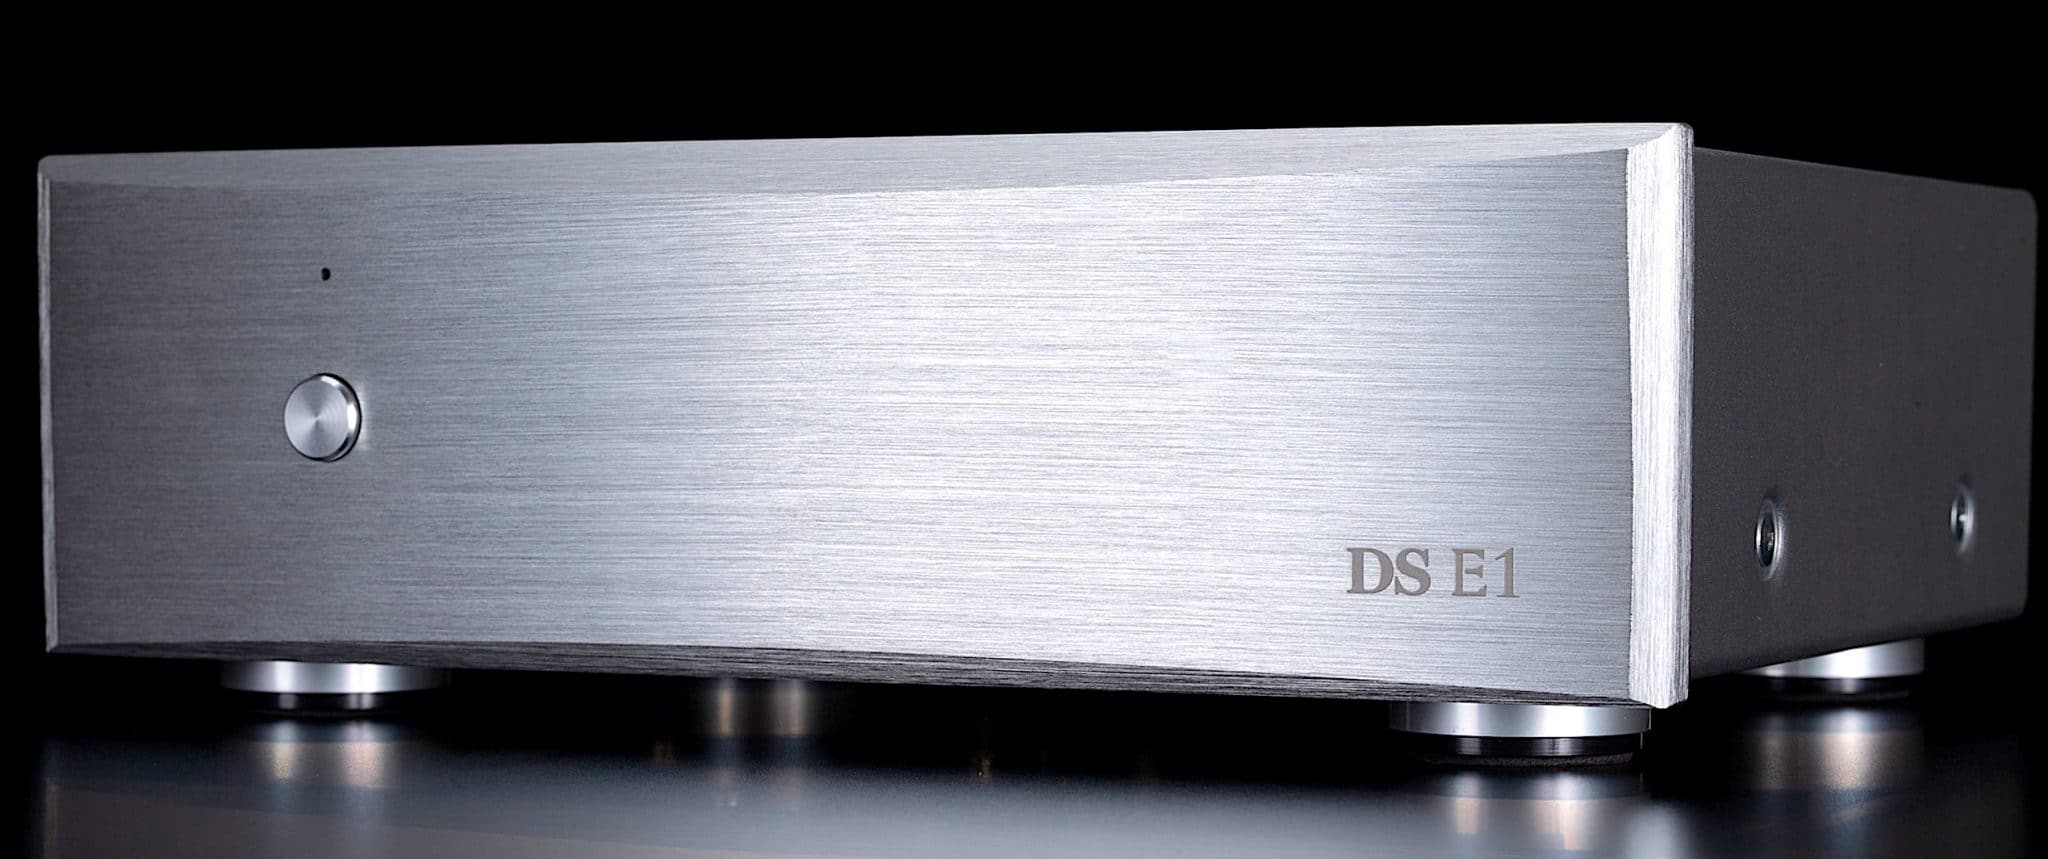 DS-E1 Entry Level From DS Audio